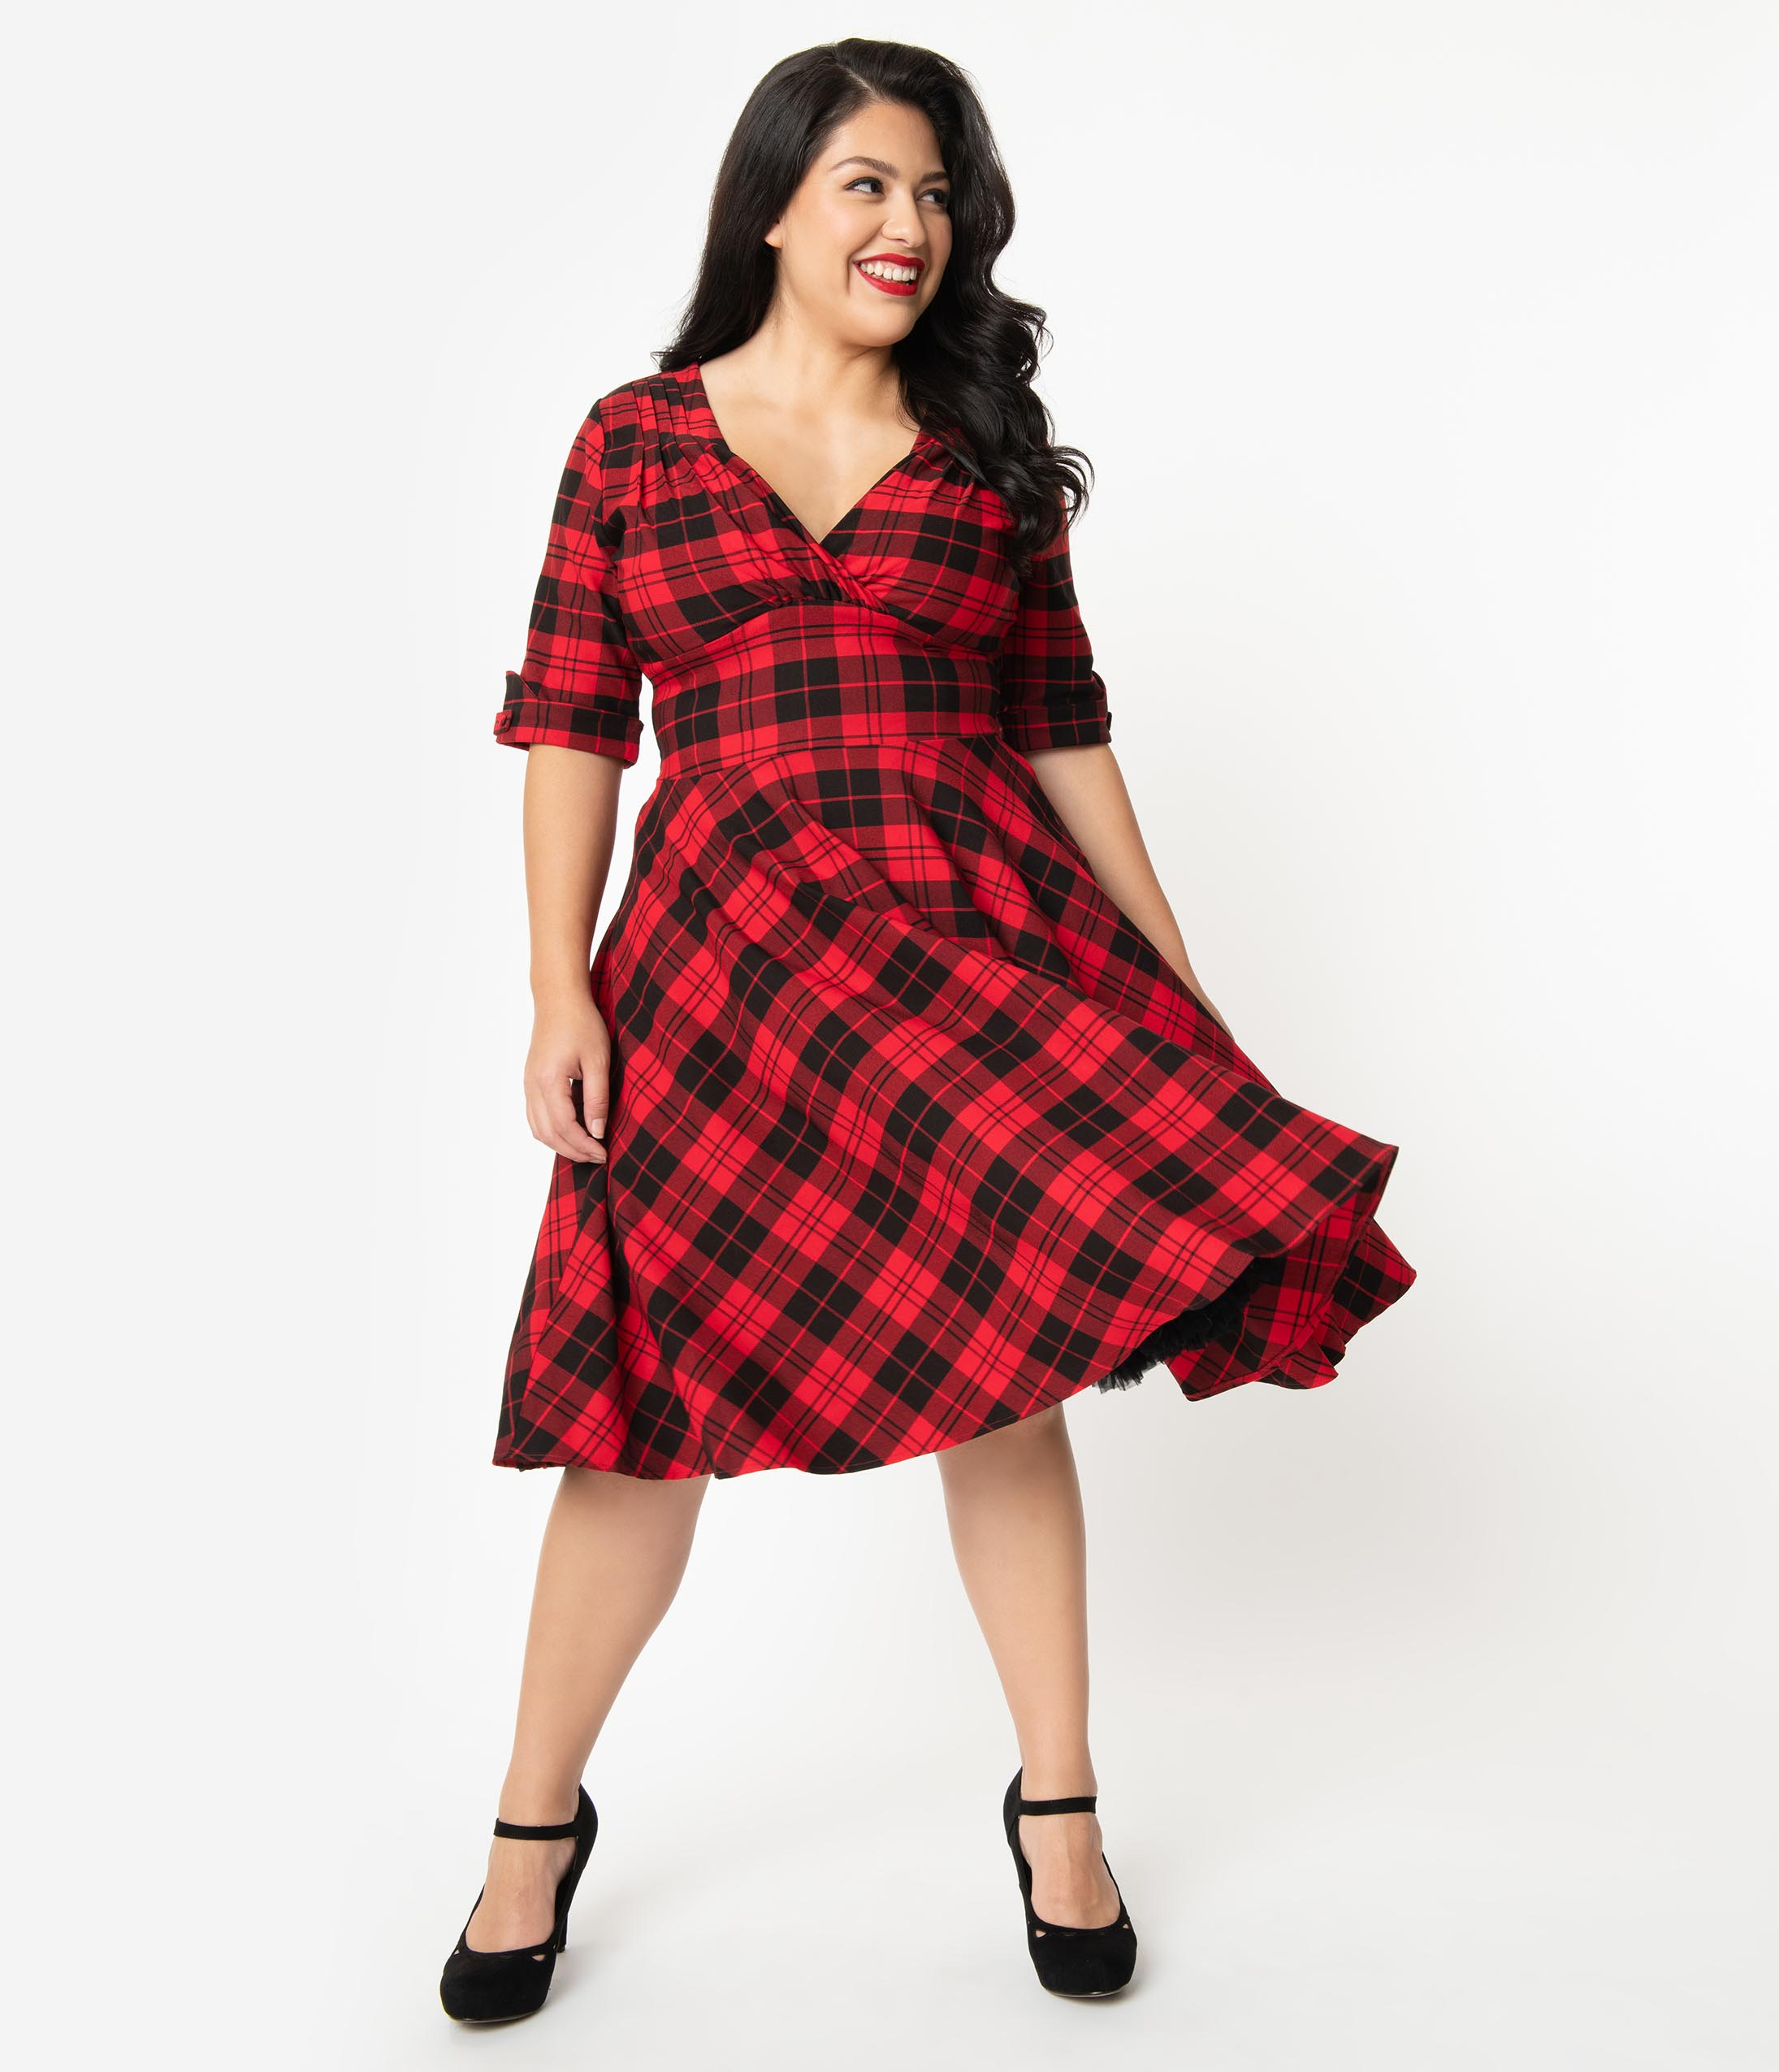 1950s Plus Size Fashion & Clothing History Unique Vintage Plus Size 1950S Red  Black Plaid Delores Swing Dress With Sleeves $98.00 AT vintagedancer.com